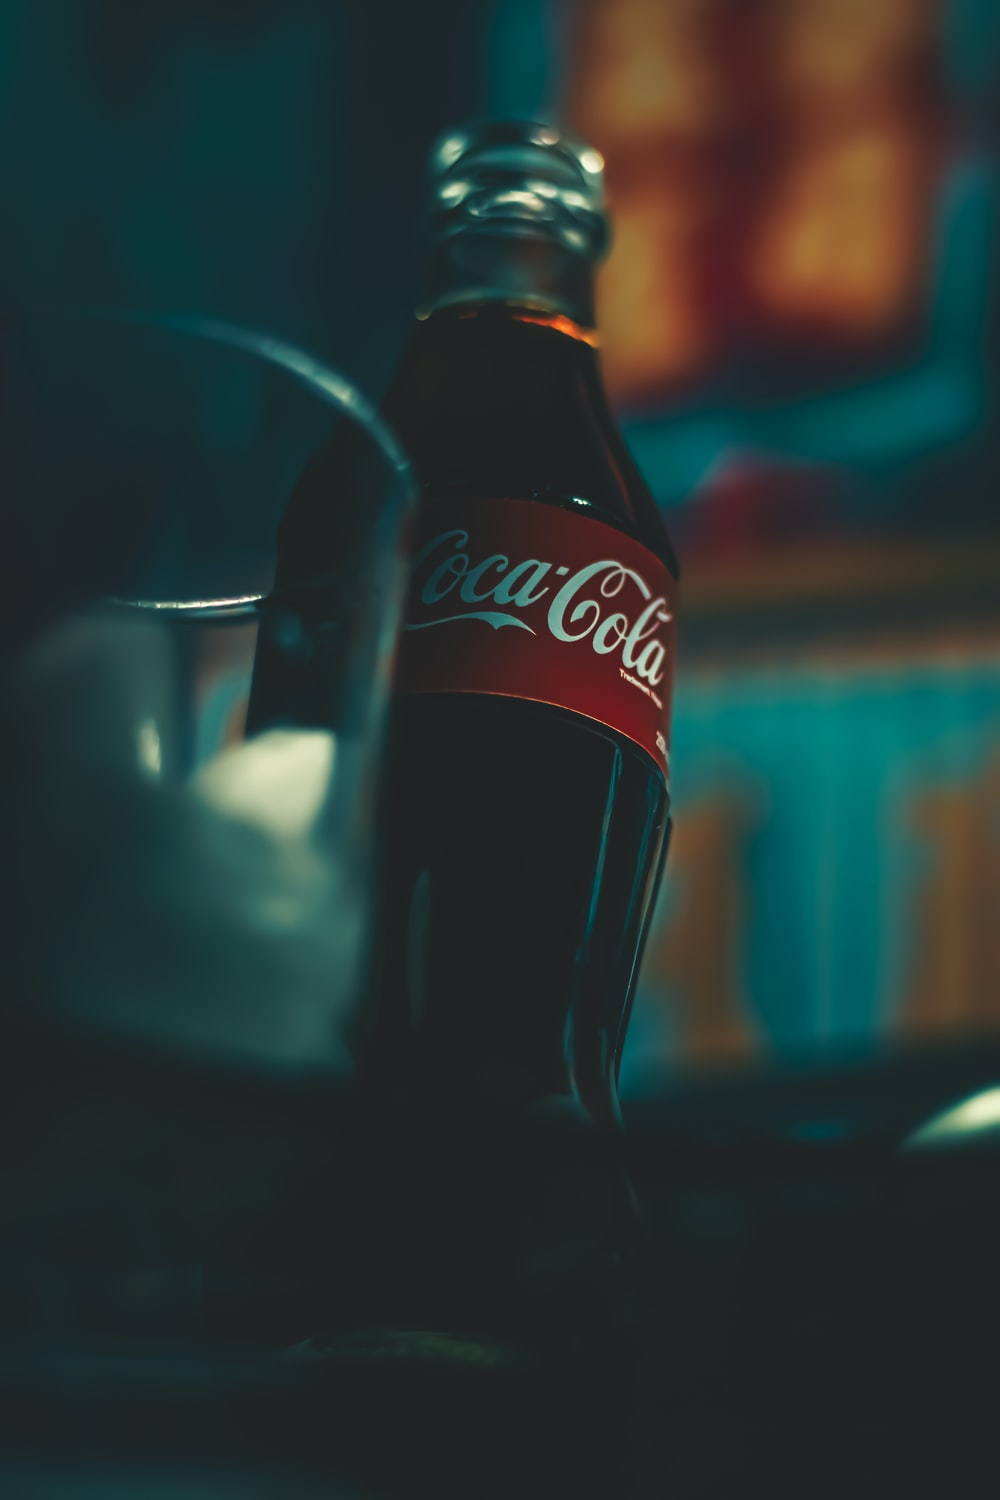 coca cola bottle beside clear drinking glass